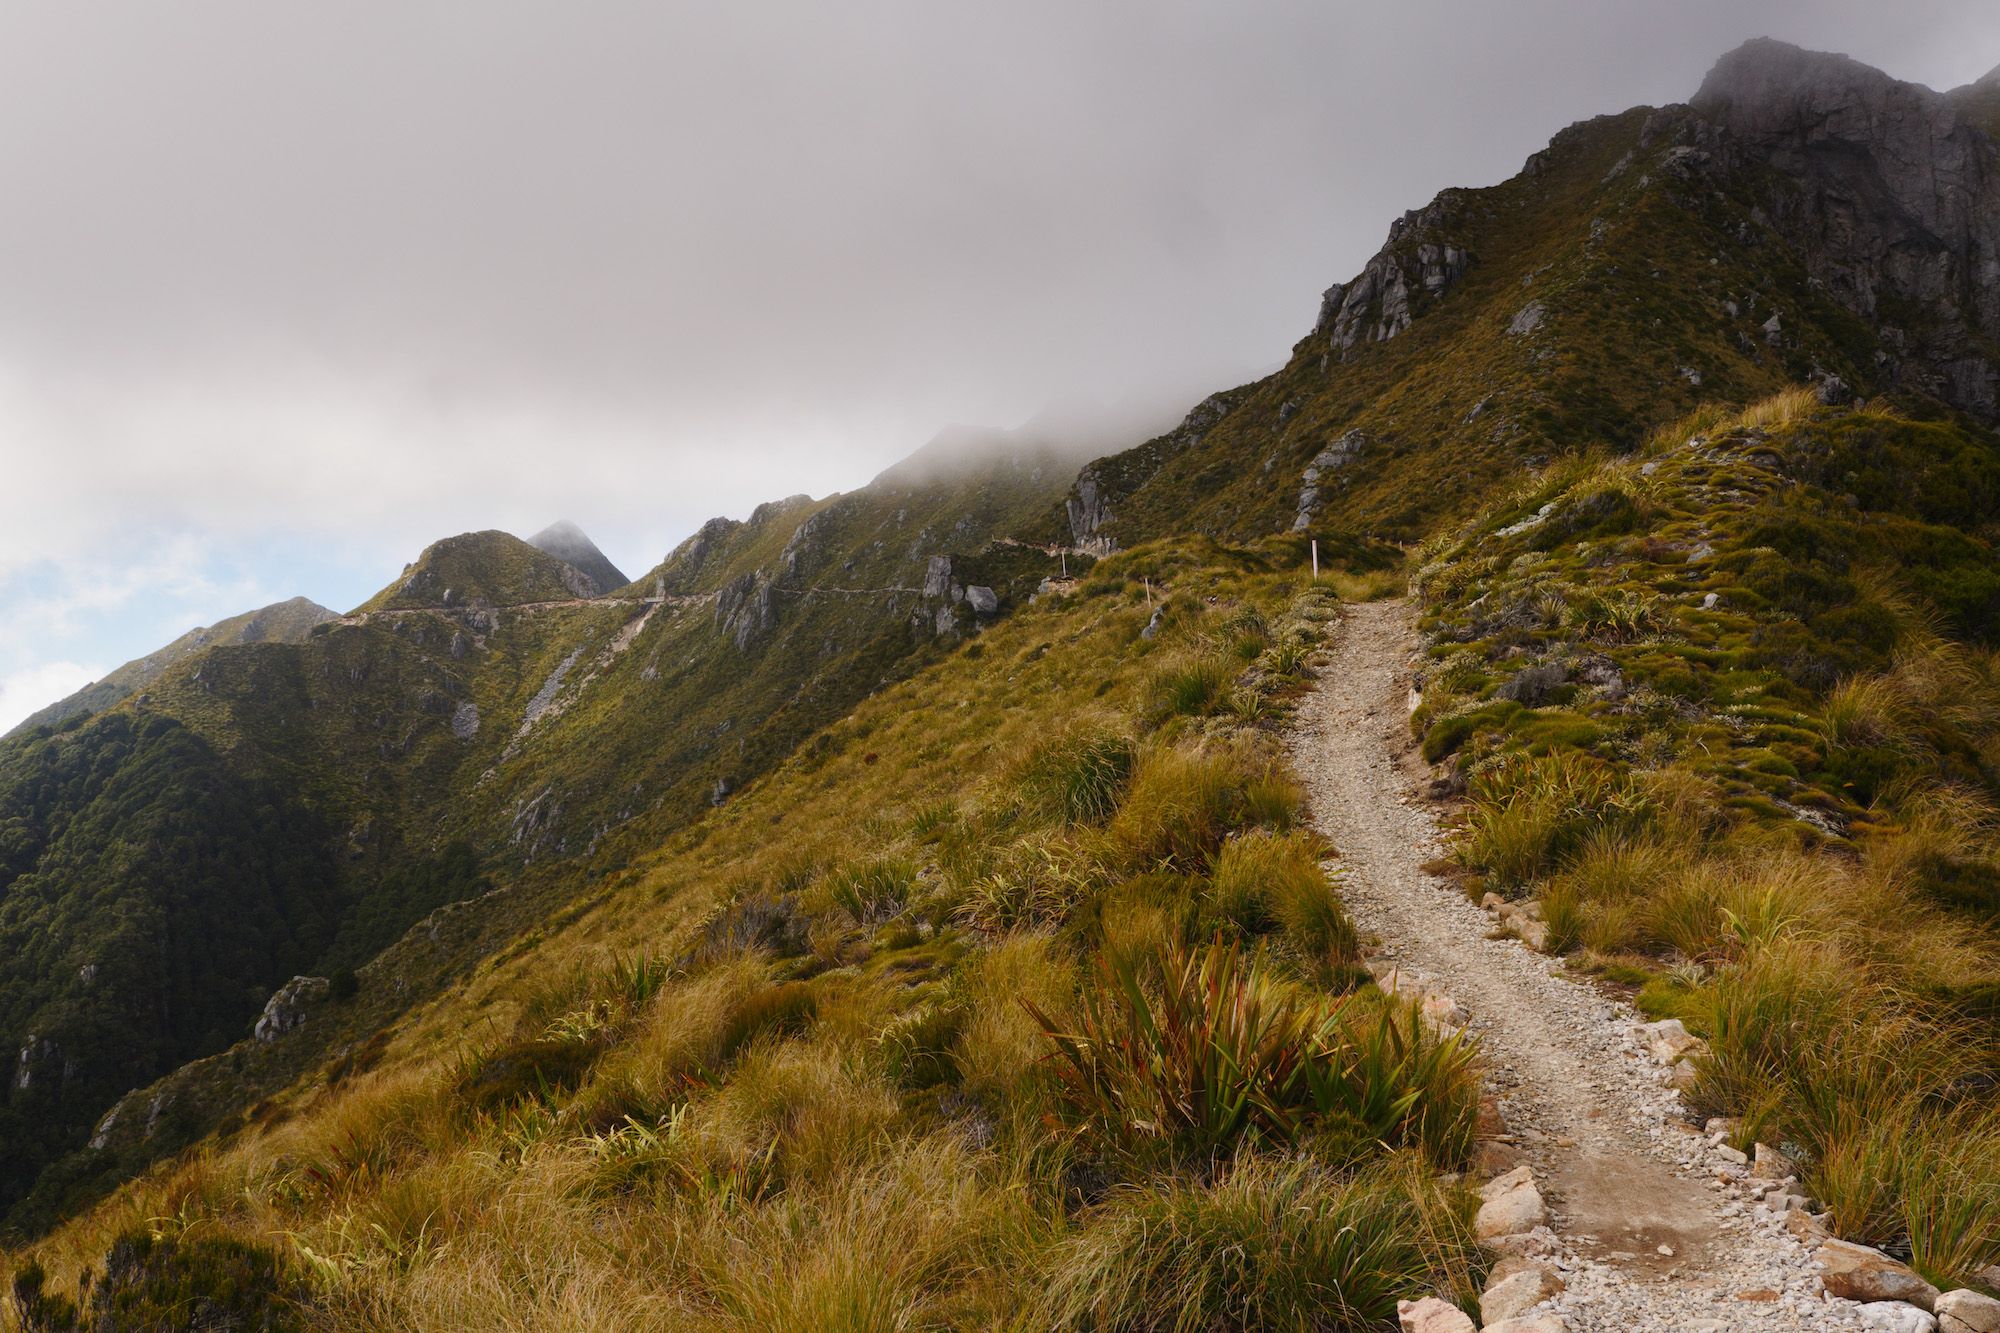 The trail towards the highest point - between Lyell Hut and Ghost Lake Hut